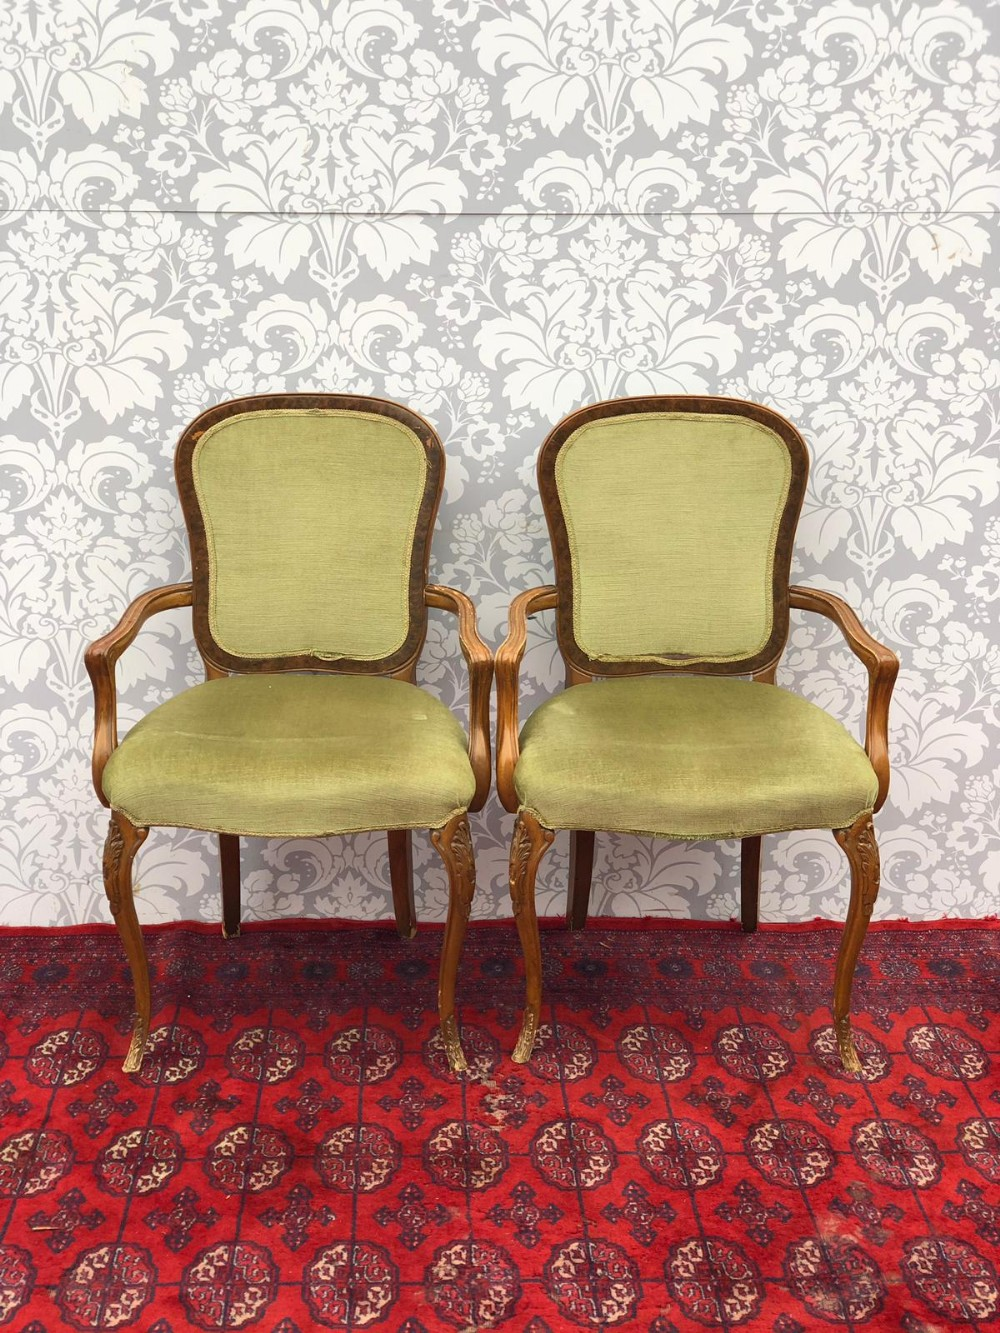 A Pair Of French Walnut Framed Upholstered Bedroom Chairs ...